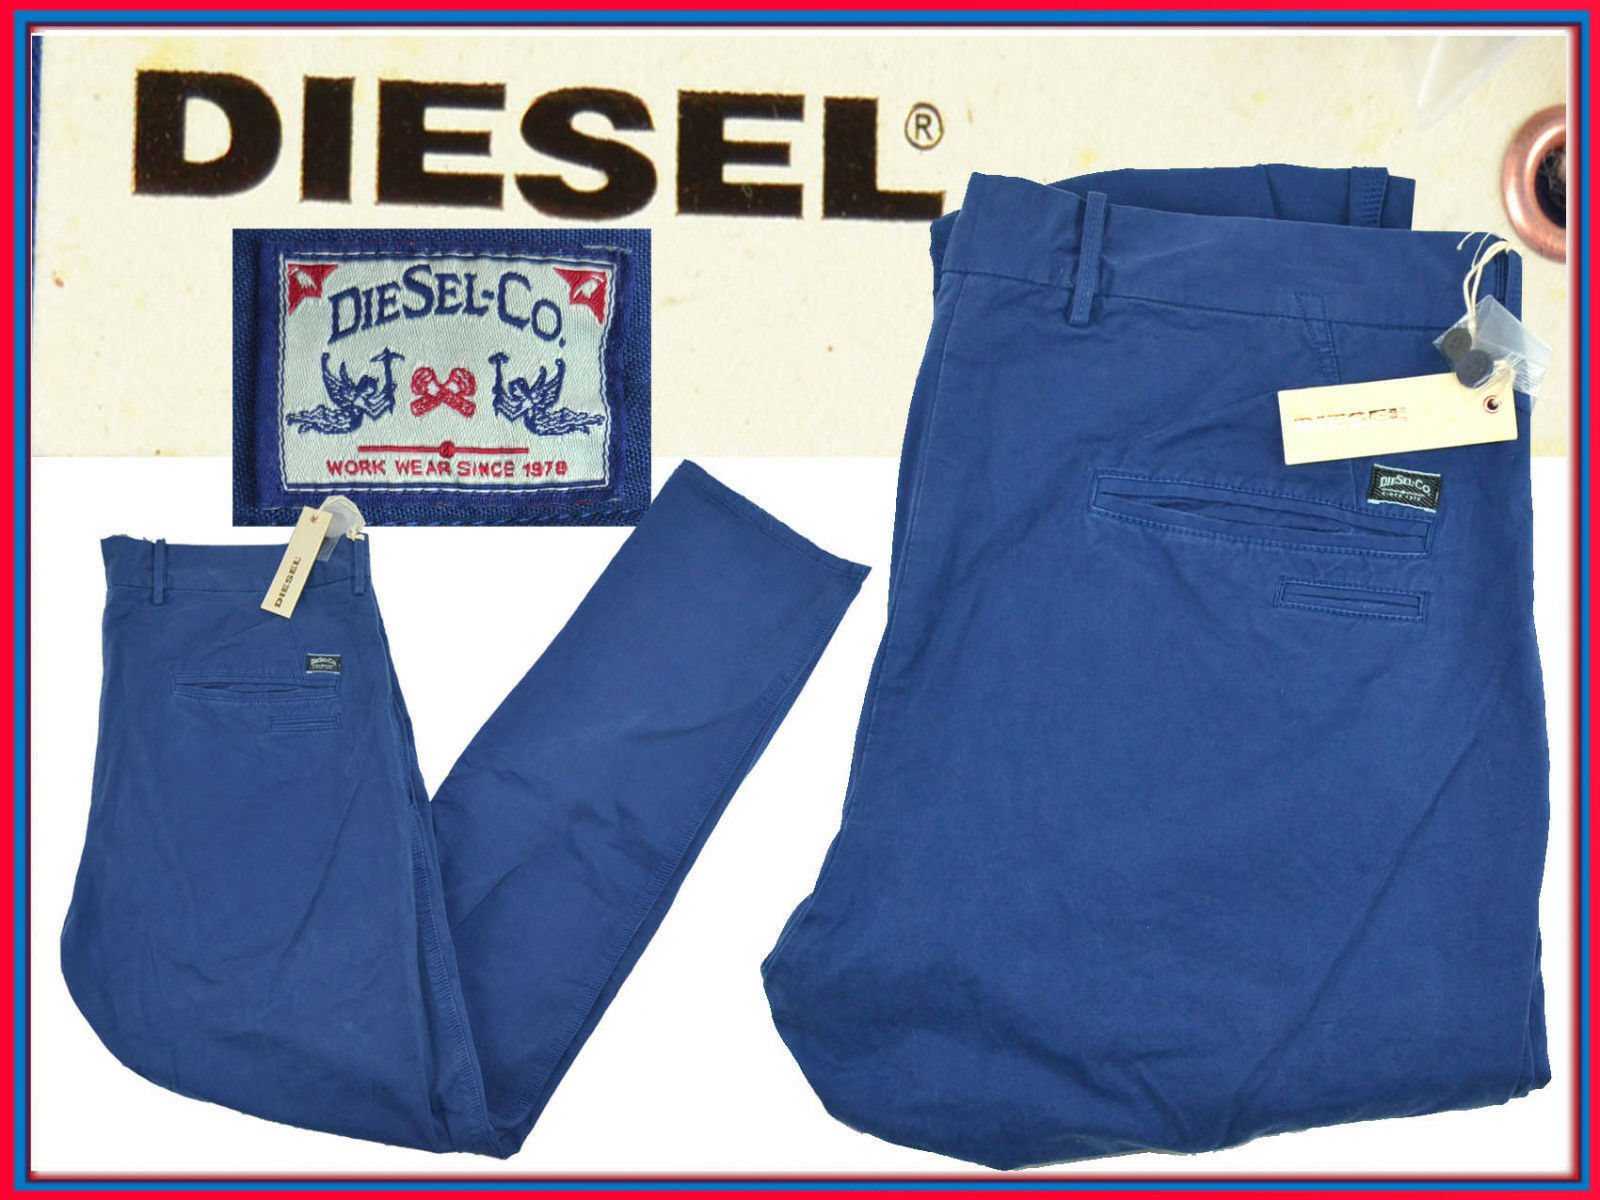 DIESEL Trouser Man 34 US   54  . In Shop . Here for less  DI08 L-2